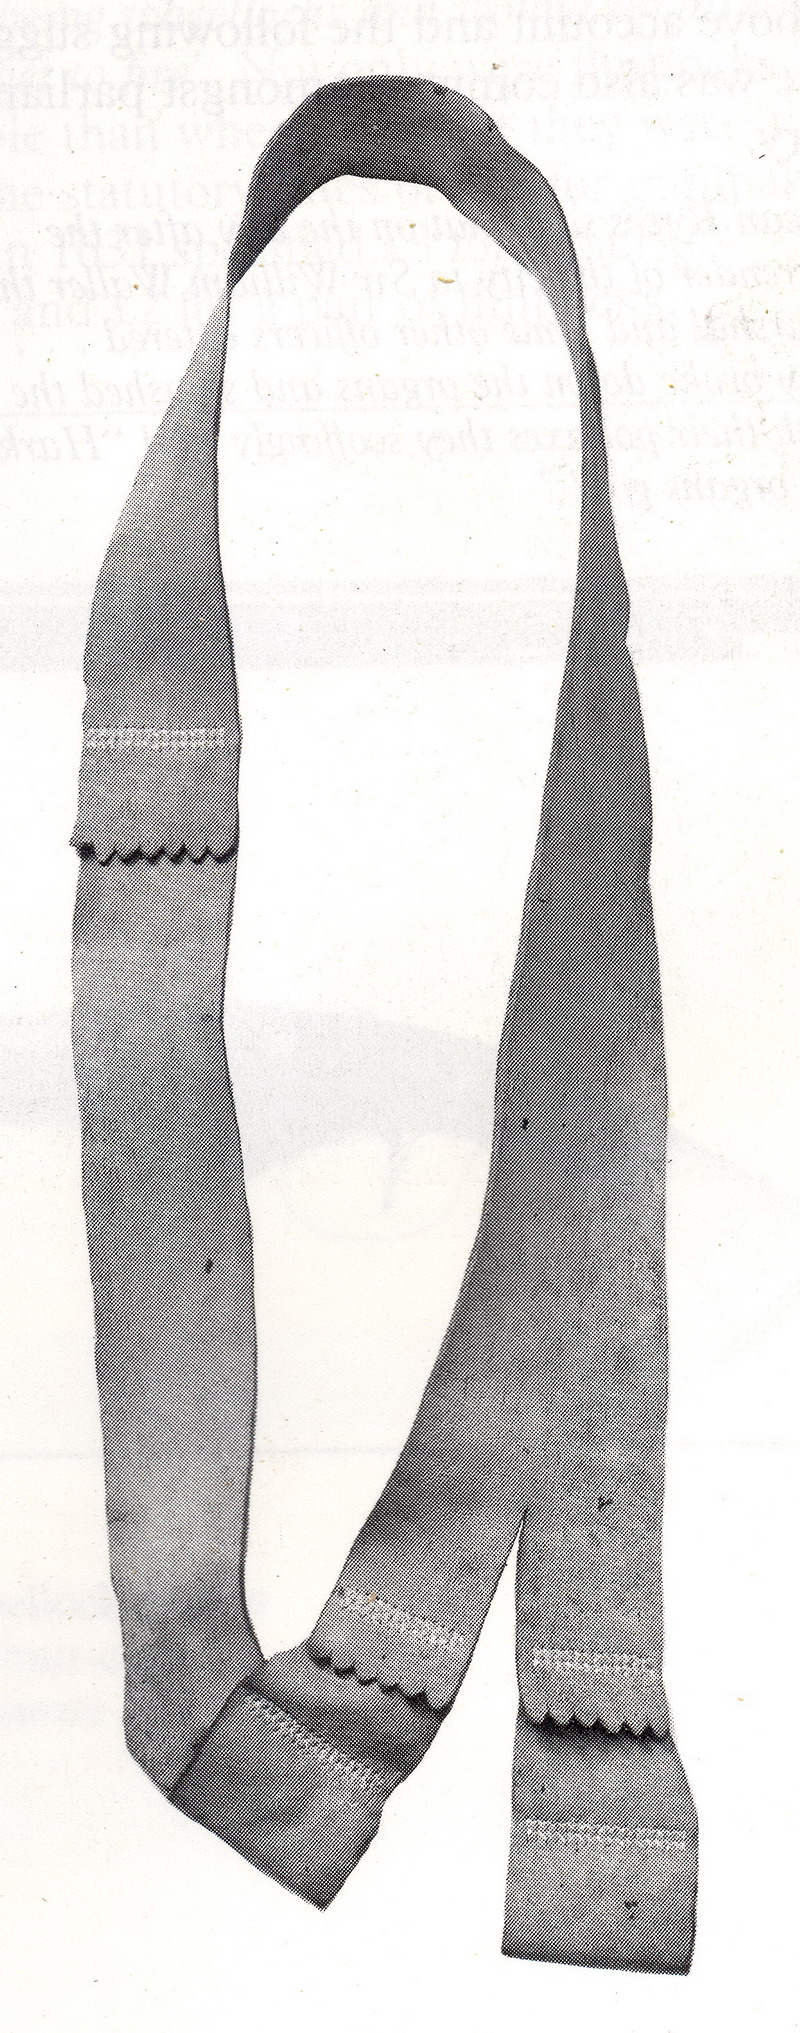 Surviving troopers baldric in the Royal Armouries Museum